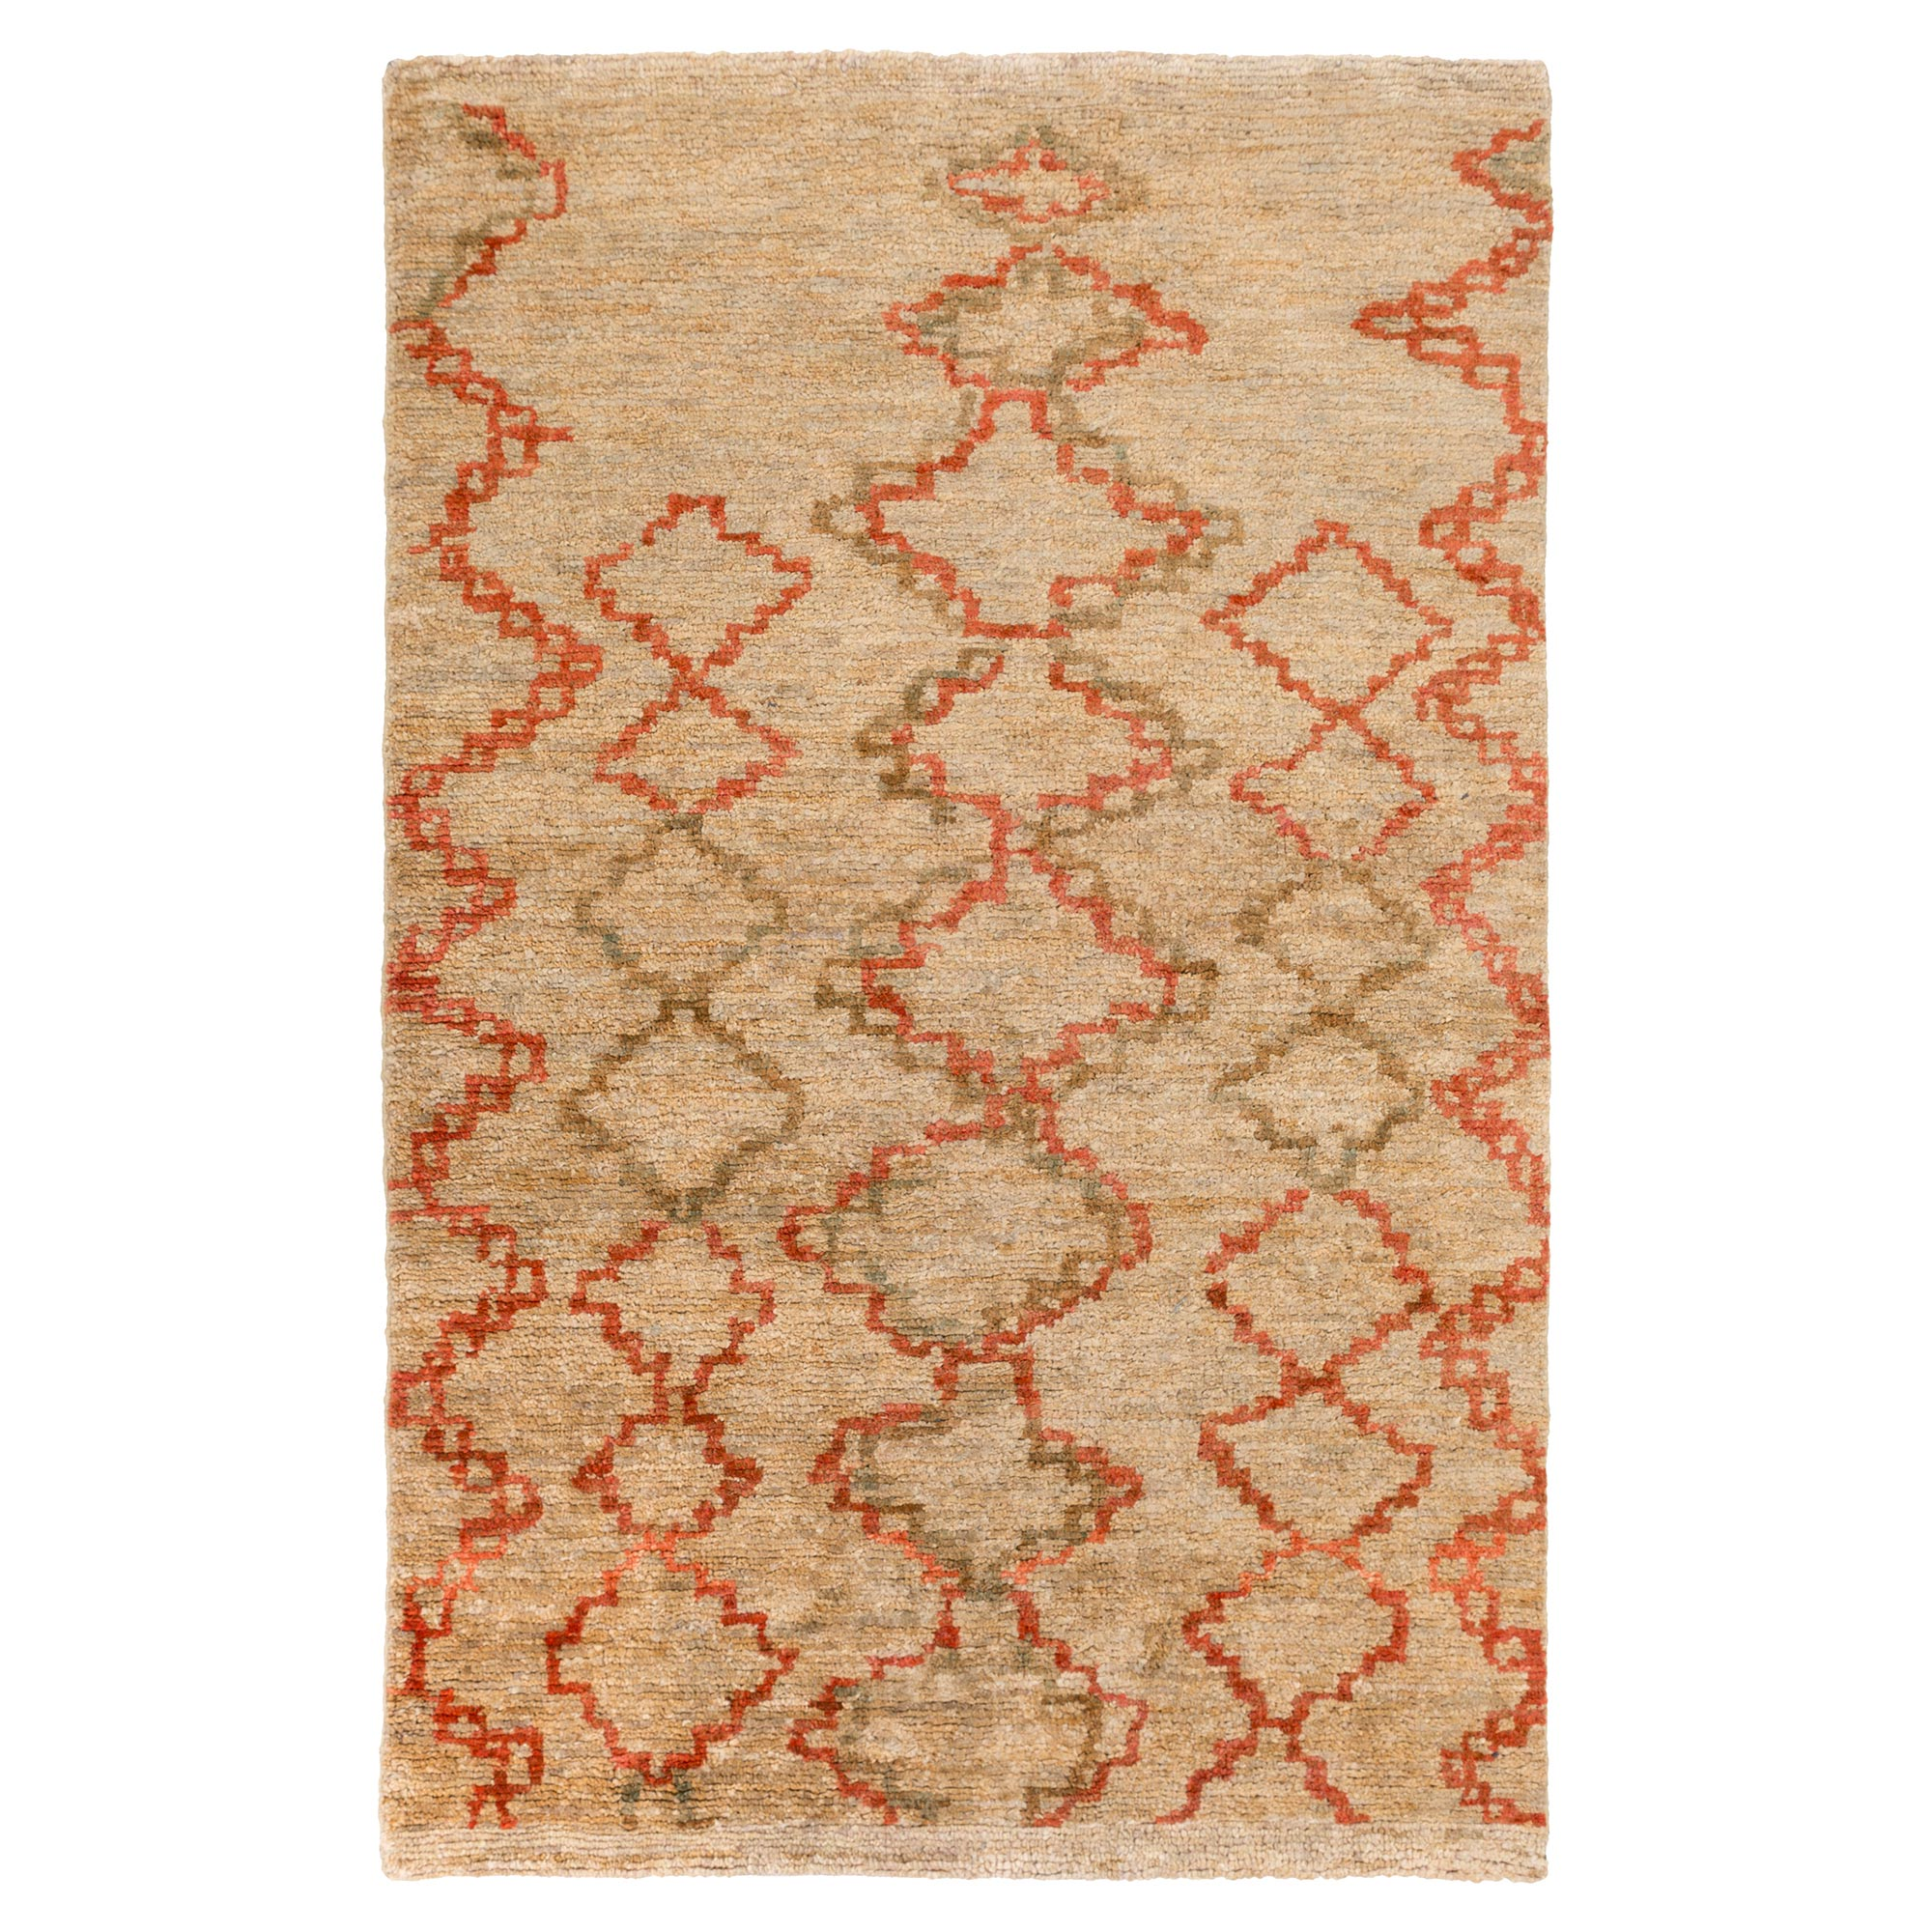 Nalia Bazaar Burnt Orange Beige Jute Rug - 4x6